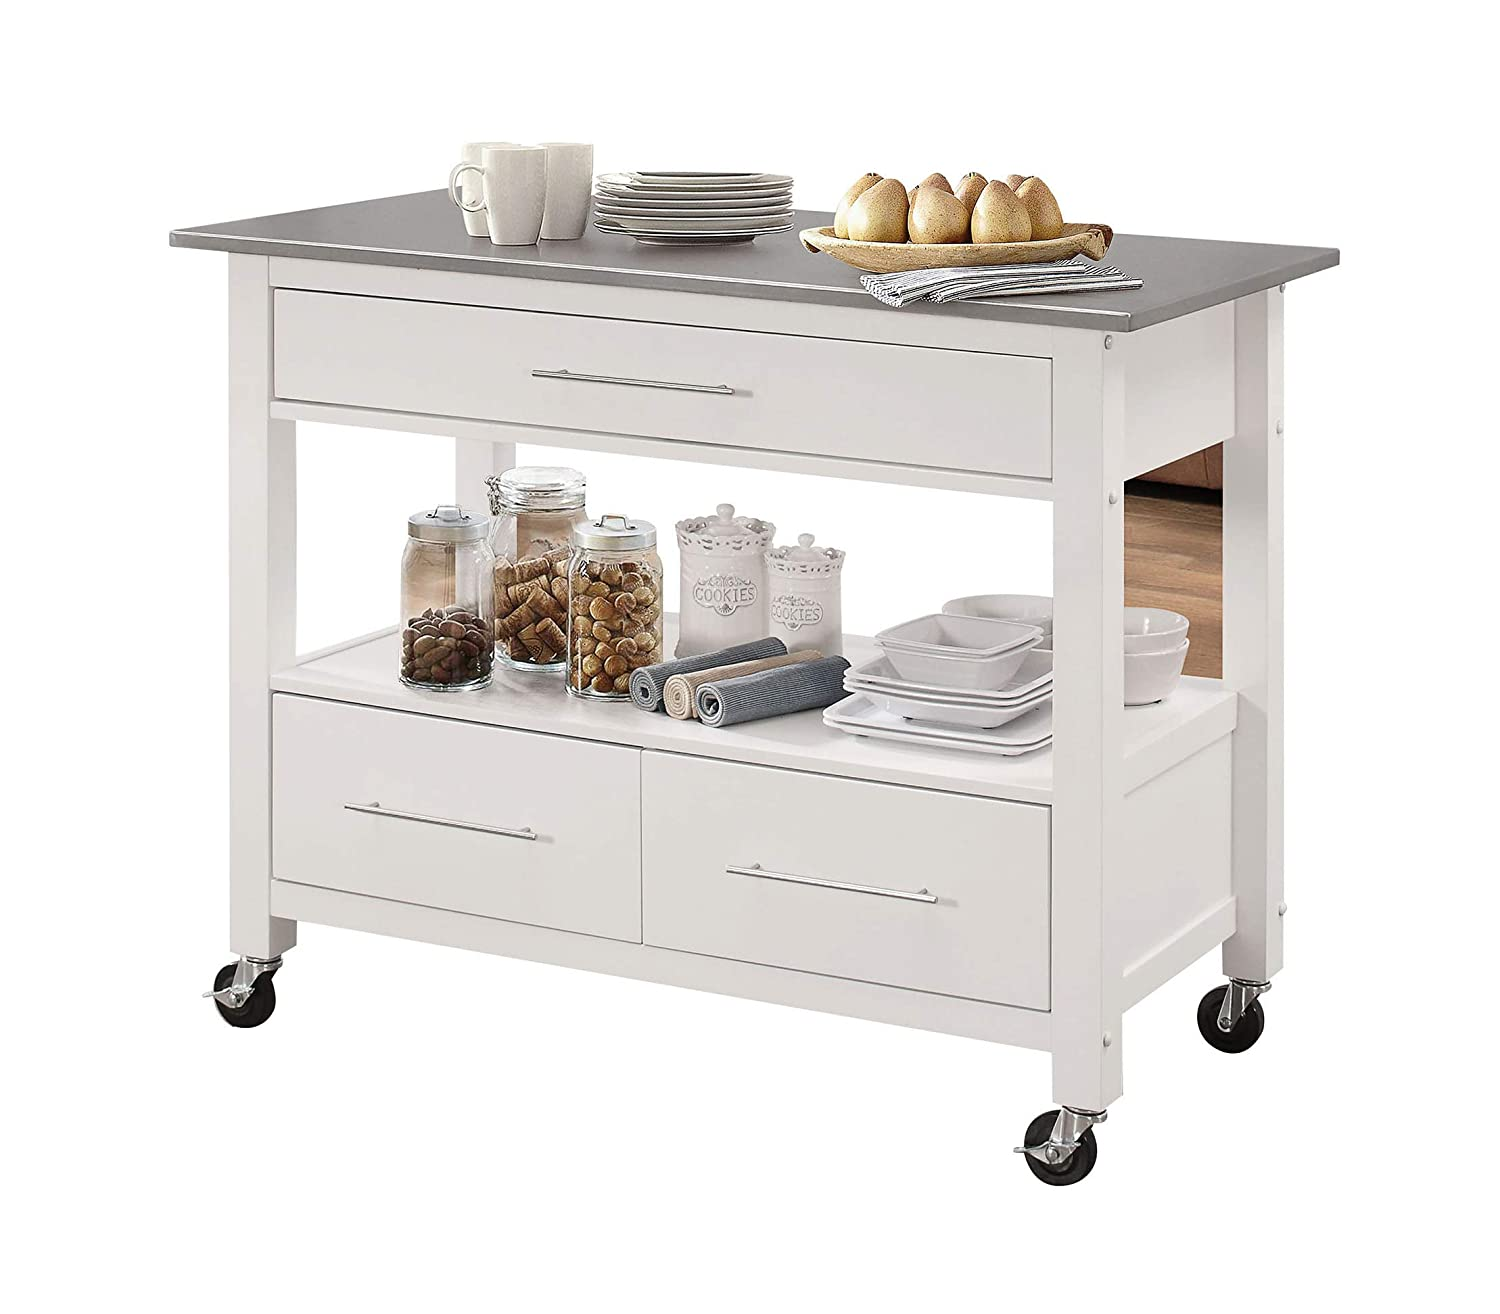 Acme Furniture 98330 Isl Ottawa Kitchen Island Stainless Steel White